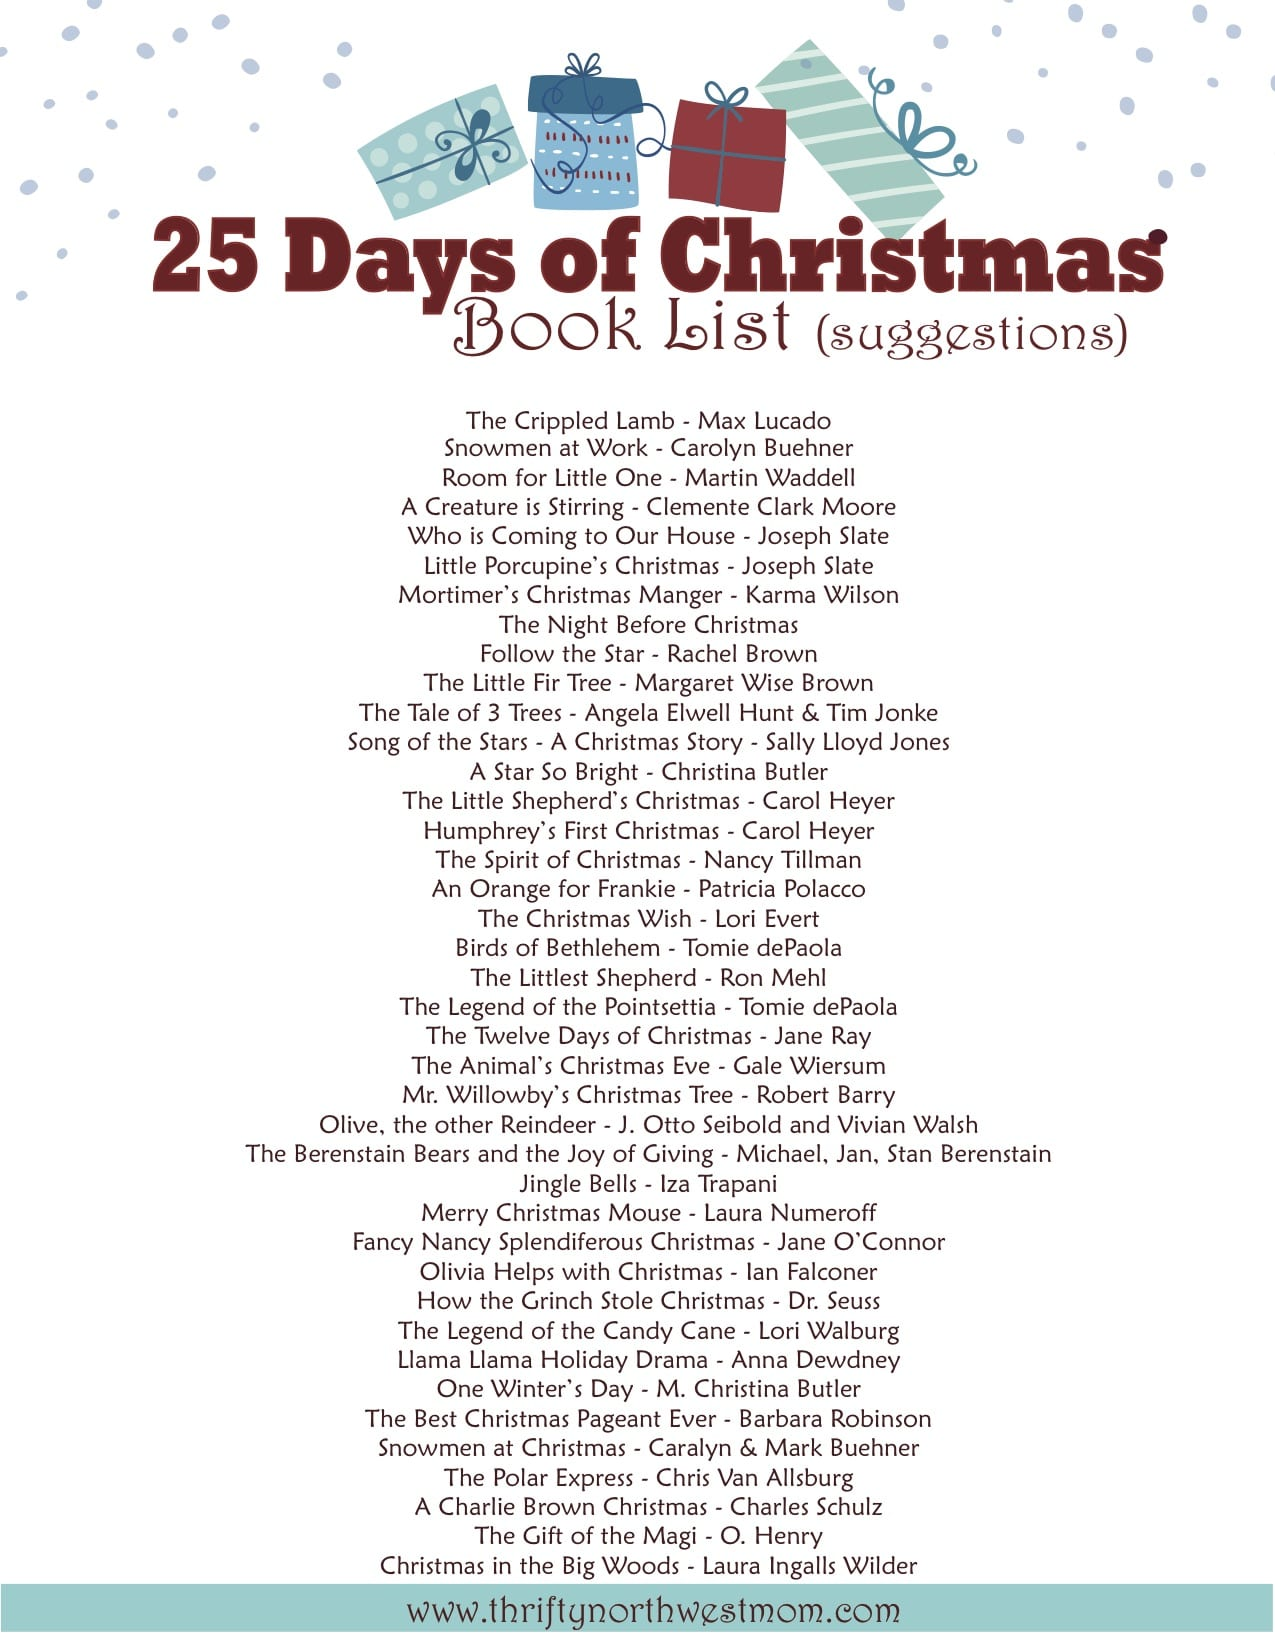 25 days of christmas book list - How Many Days Of Christmas